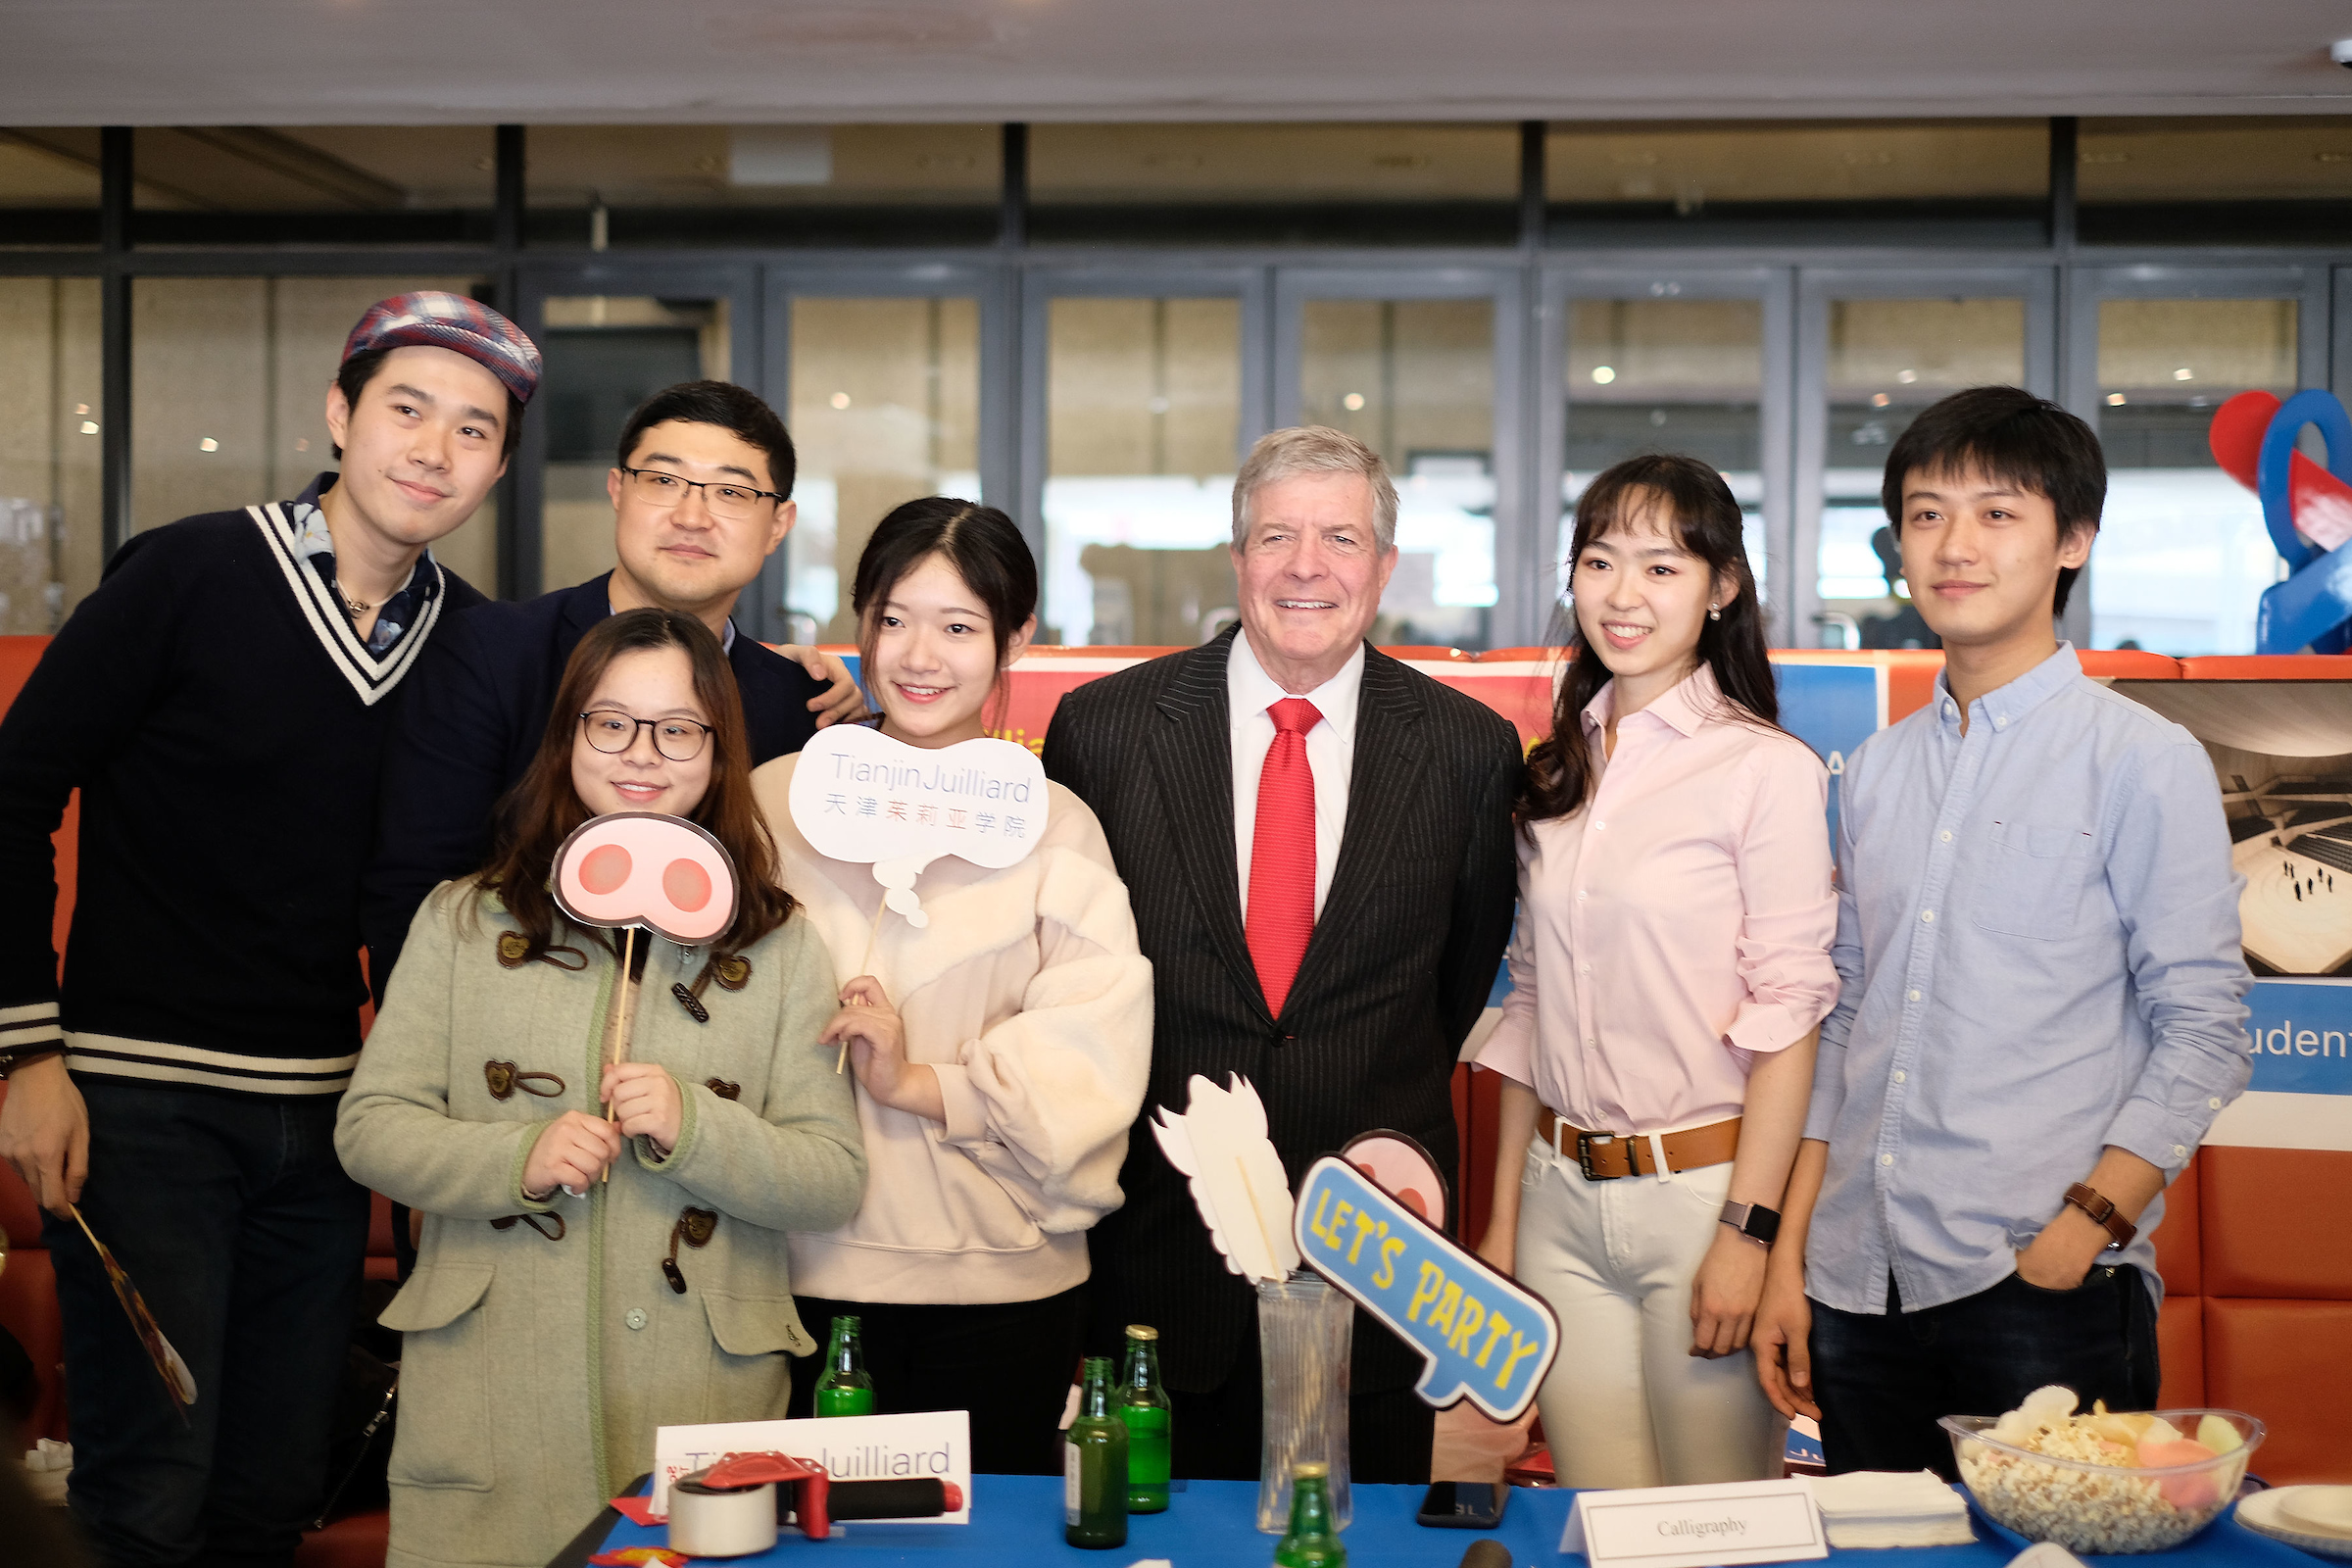 Juilliard students with Dr. Joseph W. Polisi at the 2019 Lunar New Year Celebration on campus in New York. Photo credit: Rachel Papo